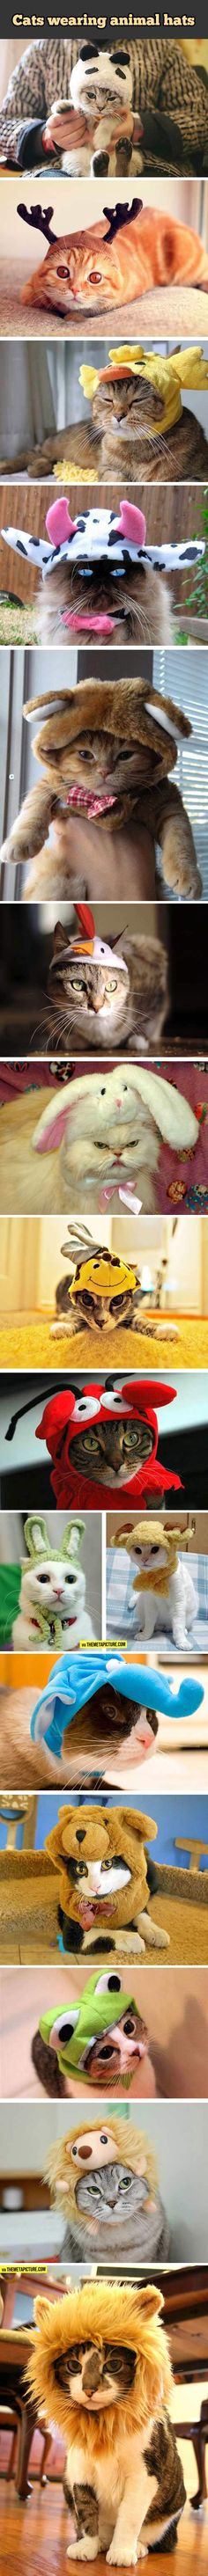 Cats wearing animal hats…this is what you should NOT do to your cats. It is wrong. Cats are dignified animals. but ..aww..looky how cute they are with the widdle hats on the fuzzy widdle heads.